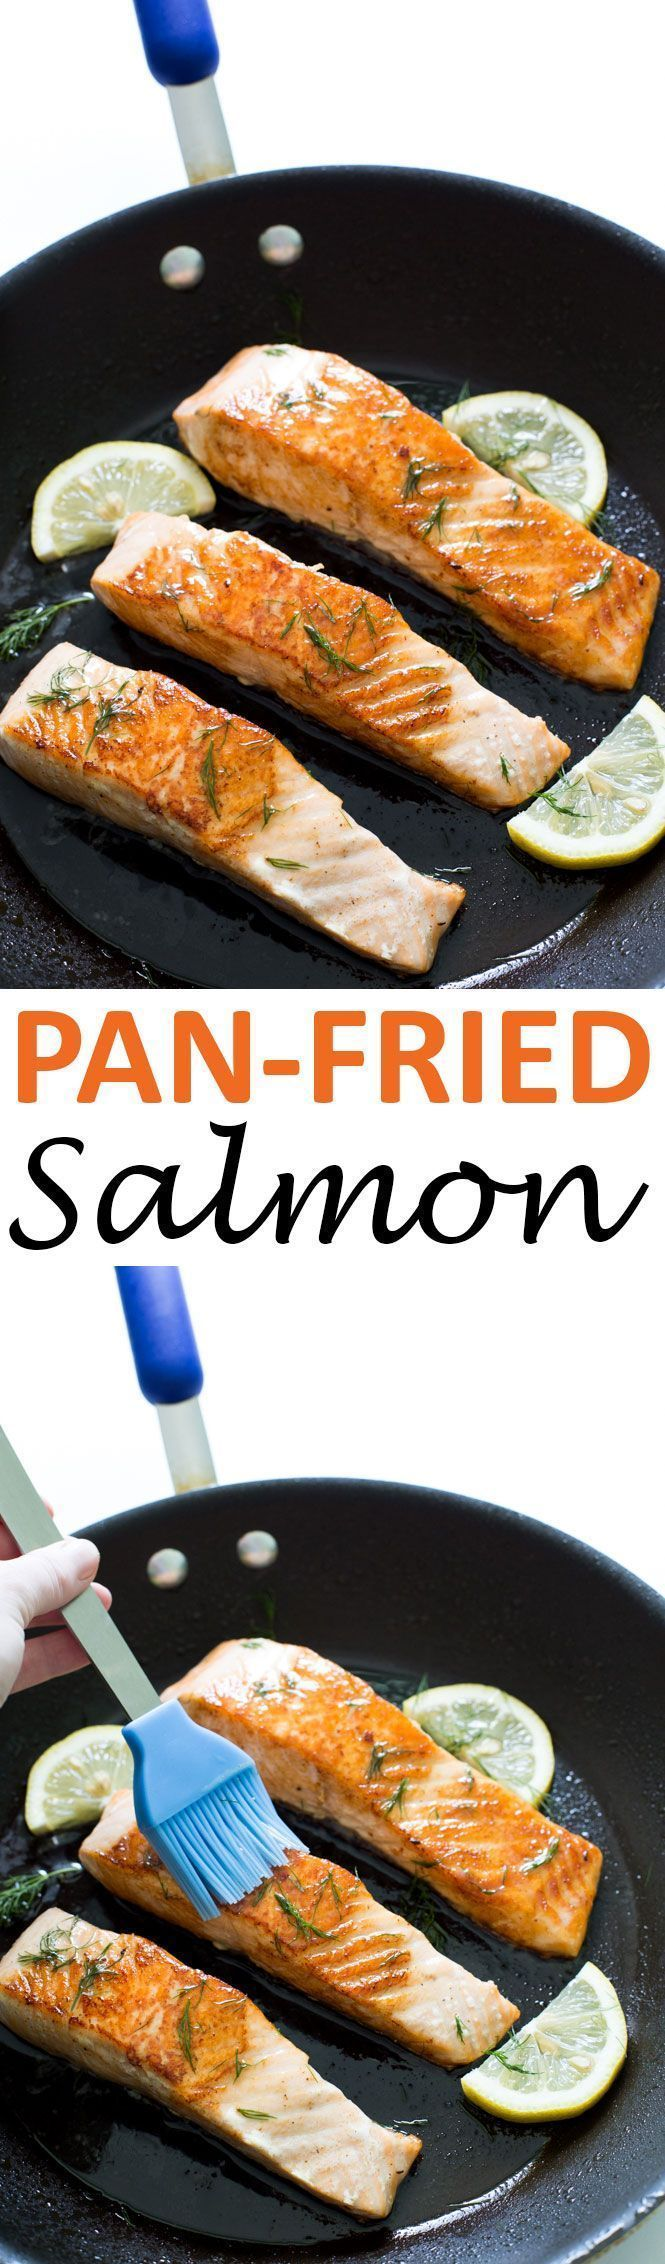 Super Easy Pan Fried Salmon with Lemon Dill Butter. Takes 20 minutes to make and only requires 5 ingredients! | chefsavvy.com #recipe #pan #fried #salmon #seafood